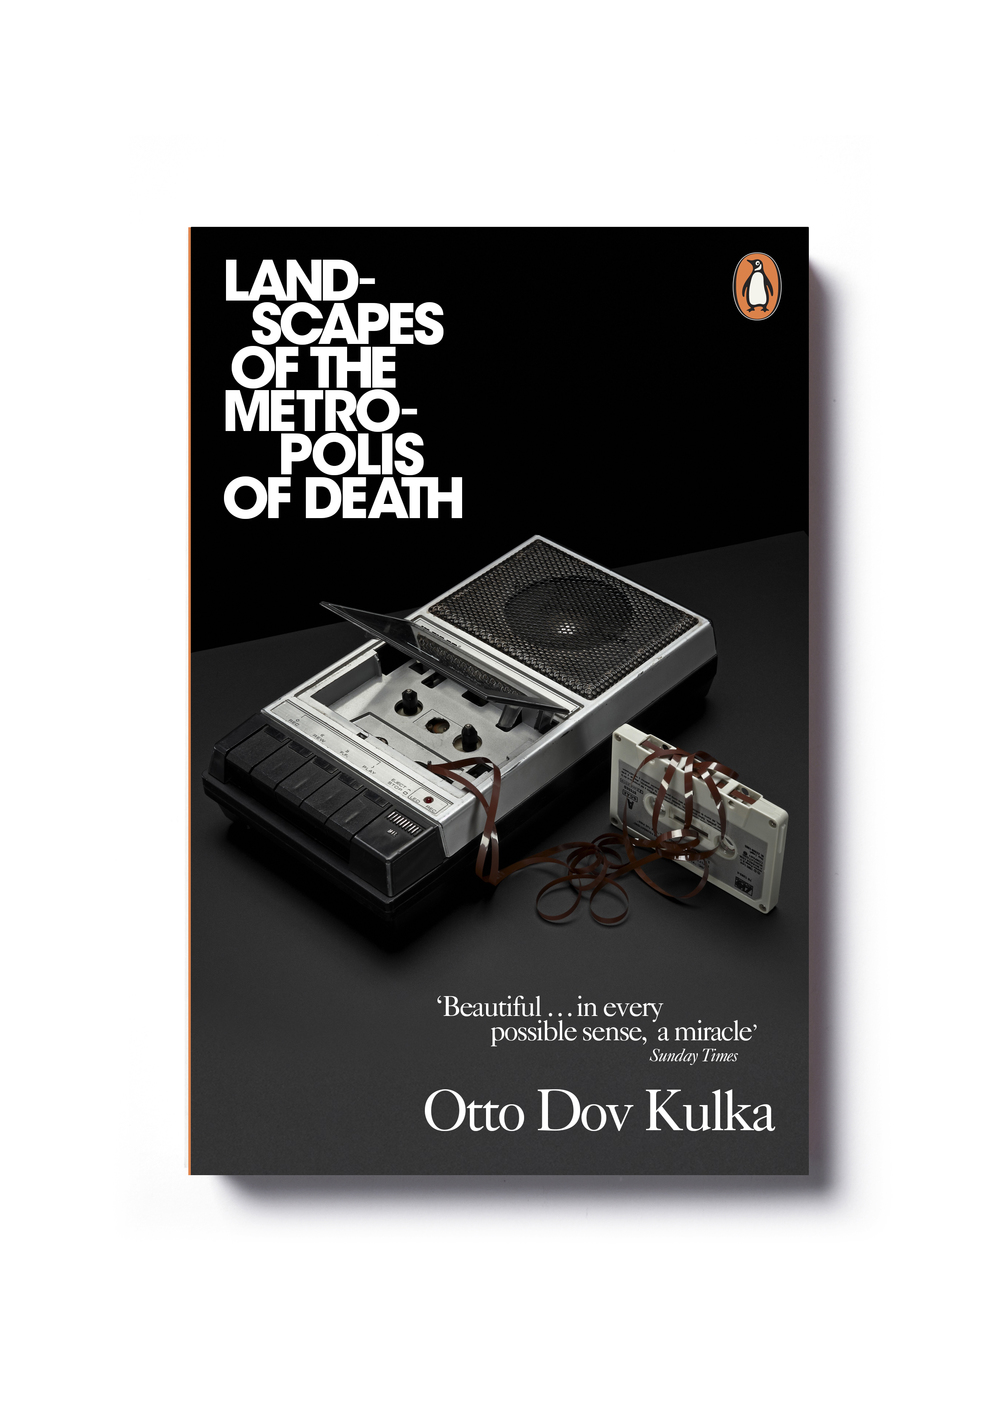 Landscapes of the Metropolis of Death by Otto Dov Kulka - Design: Jim Stoddart